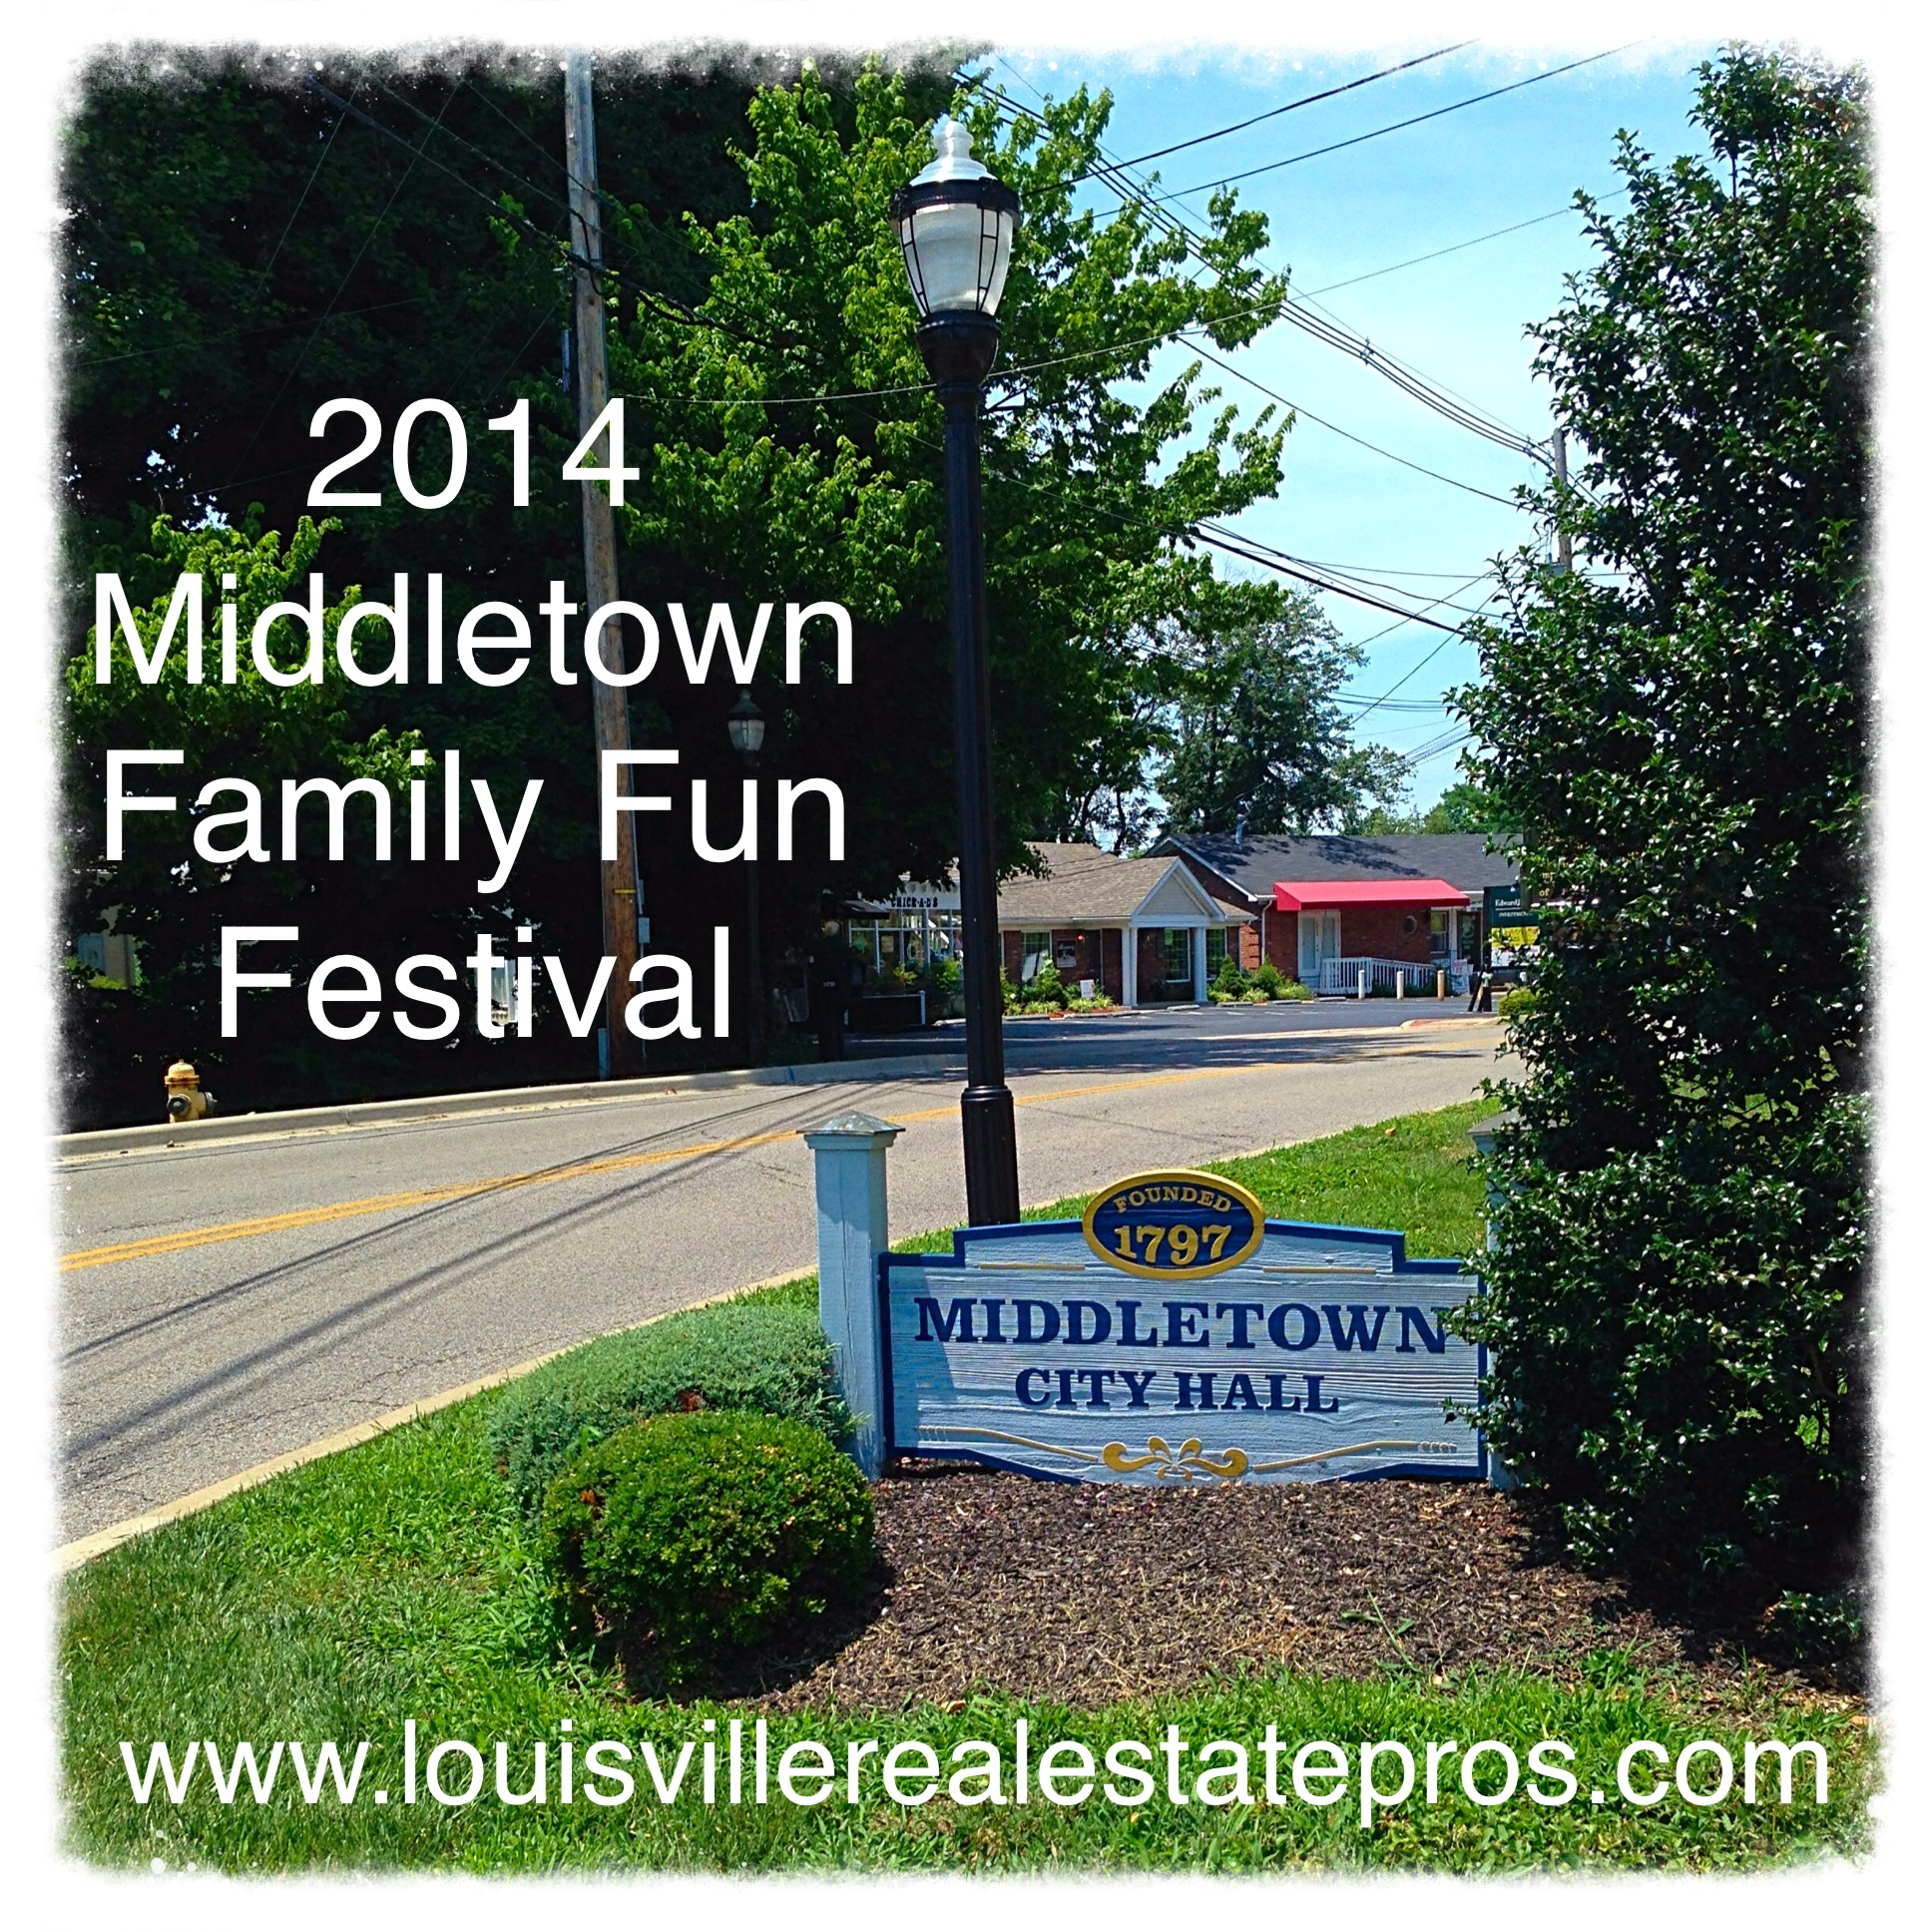 2014 Middletown Family Fun Festival